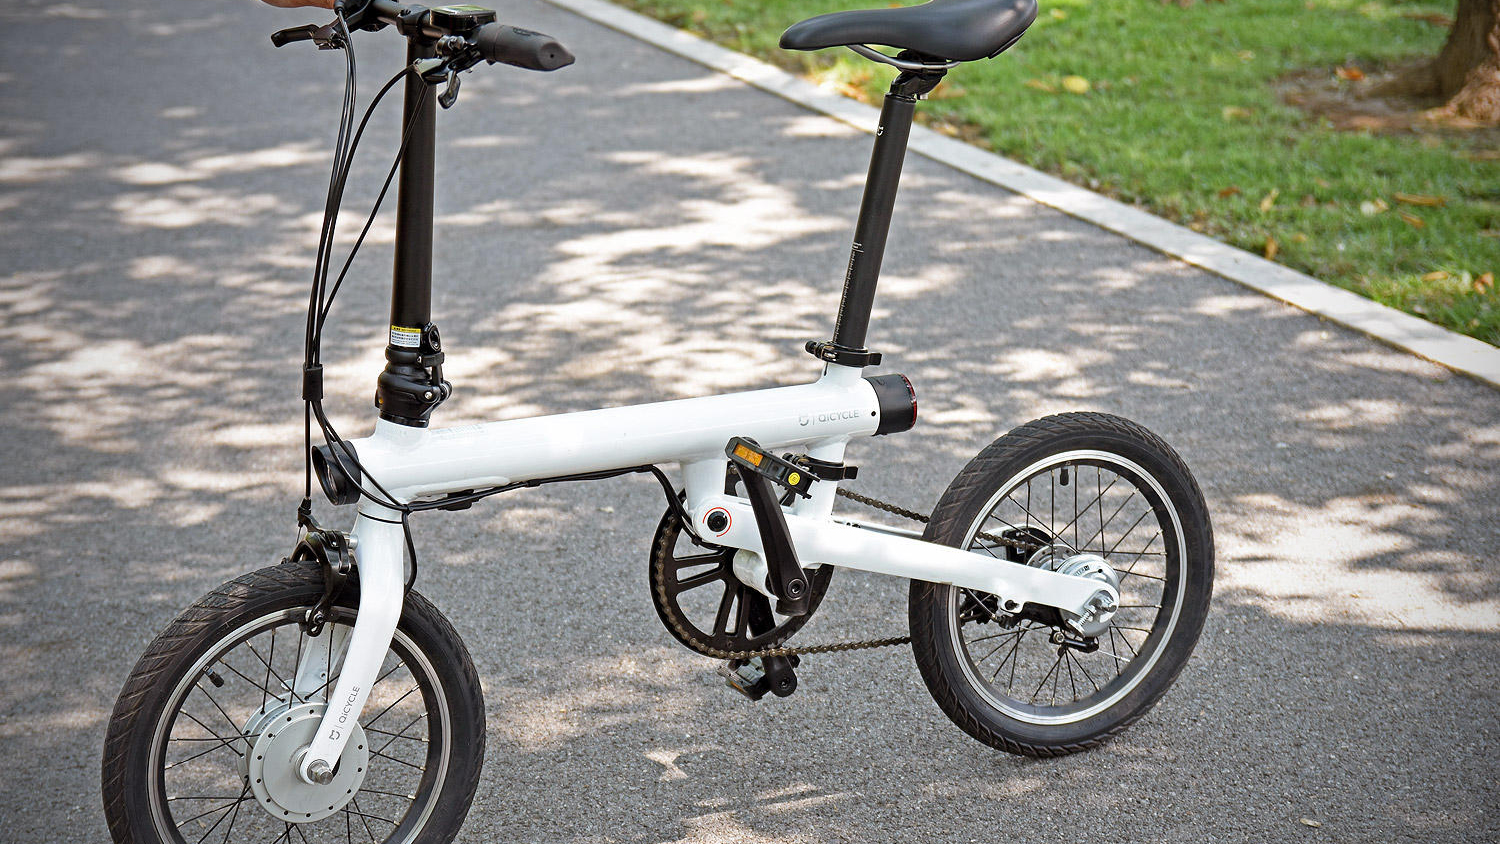 Video: Xiaomi's not just about phones: It now has an electric bike, the Mi QiCycle